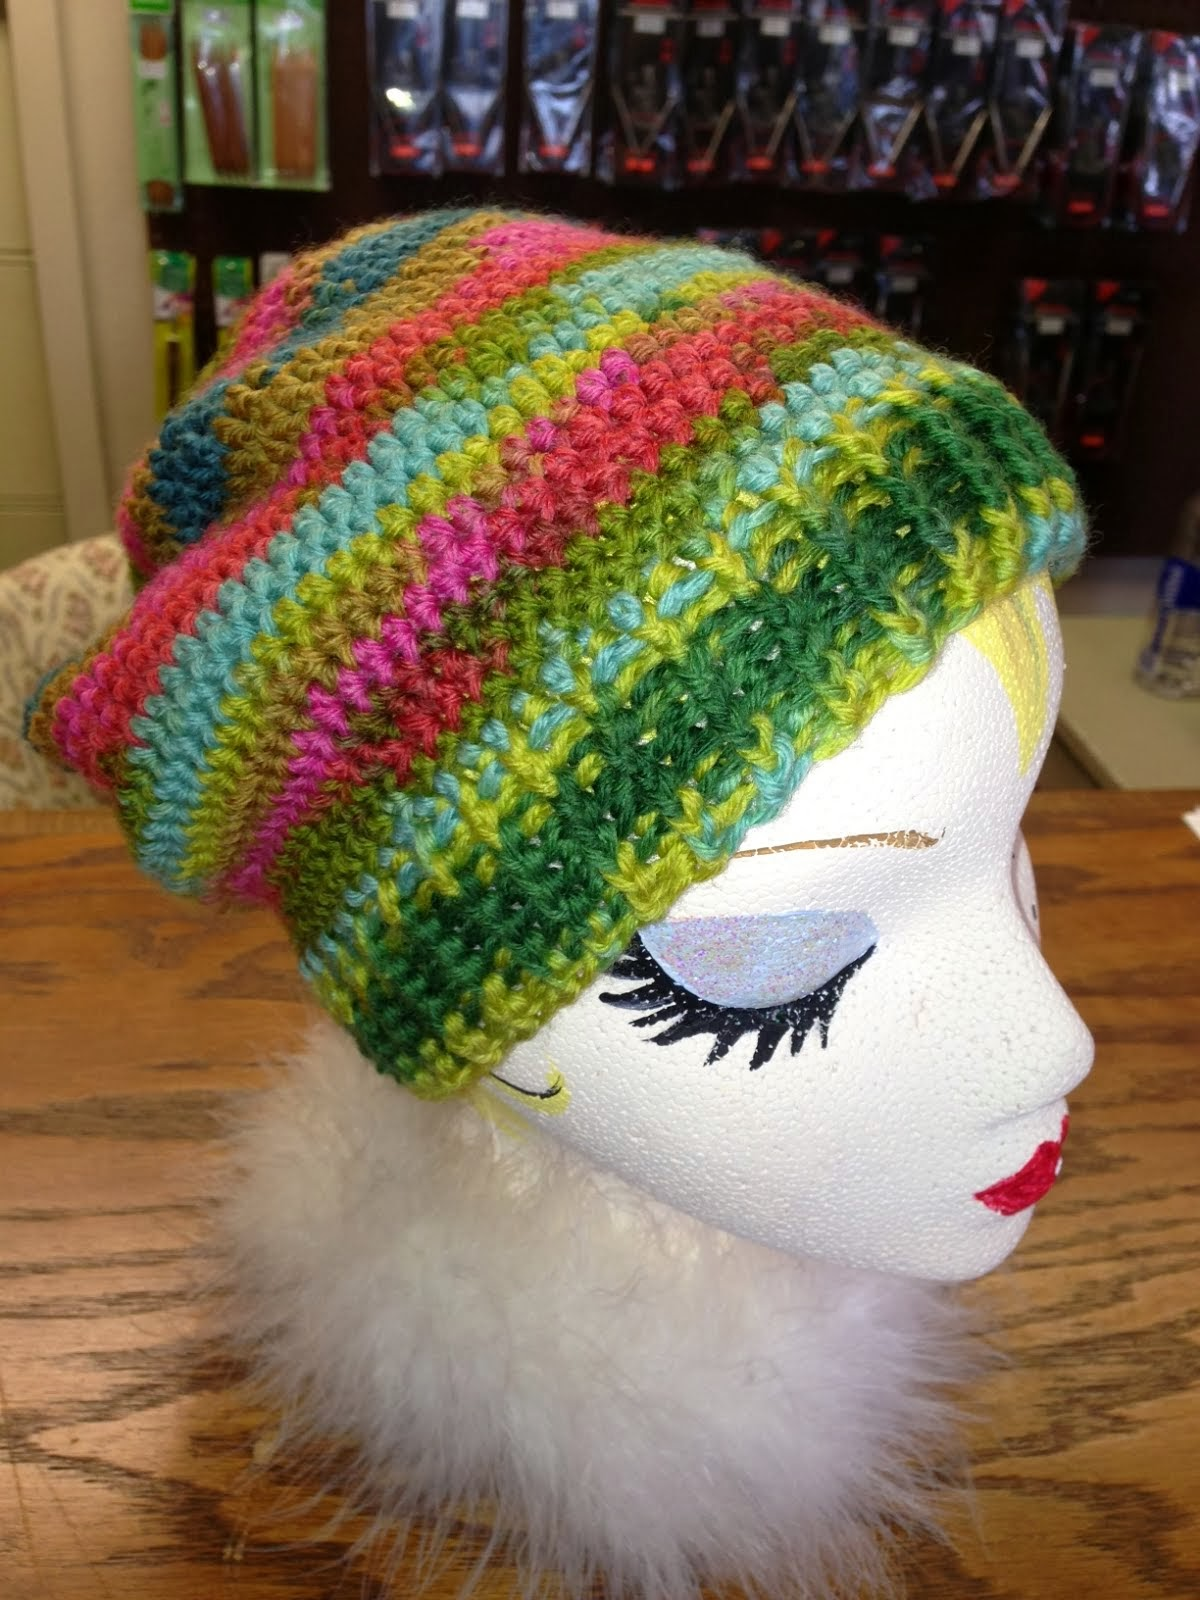 Cool crocheted hat!